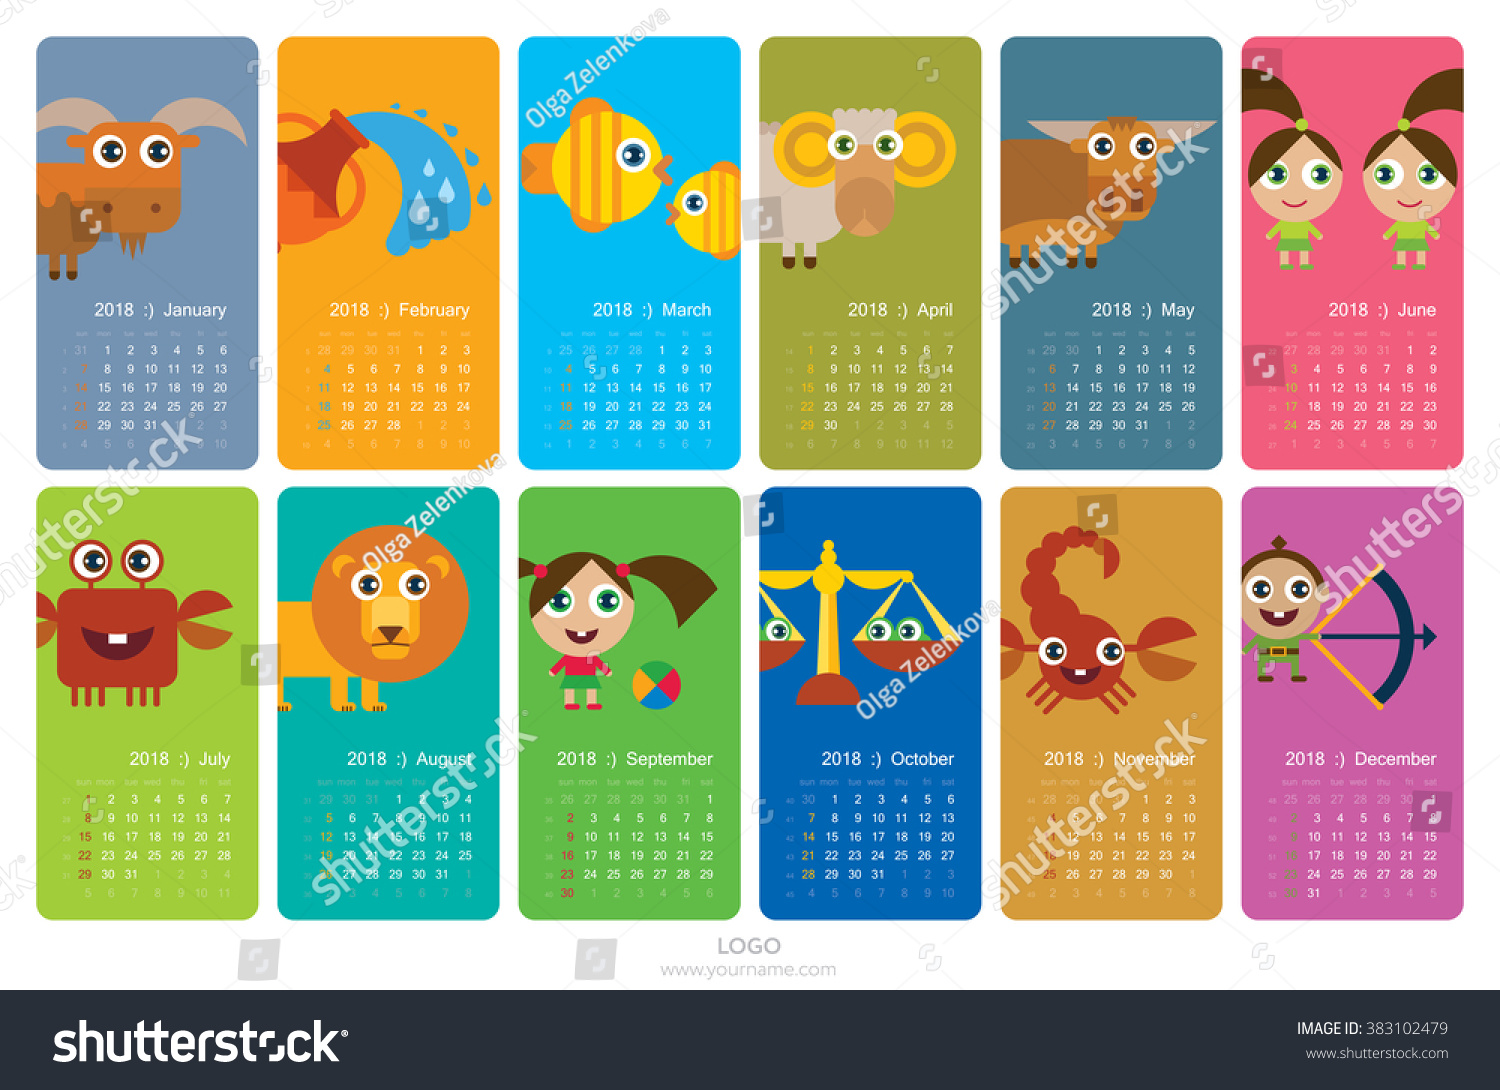 Kids Calendar Design : Scorpio horoscope for sunday october autos post